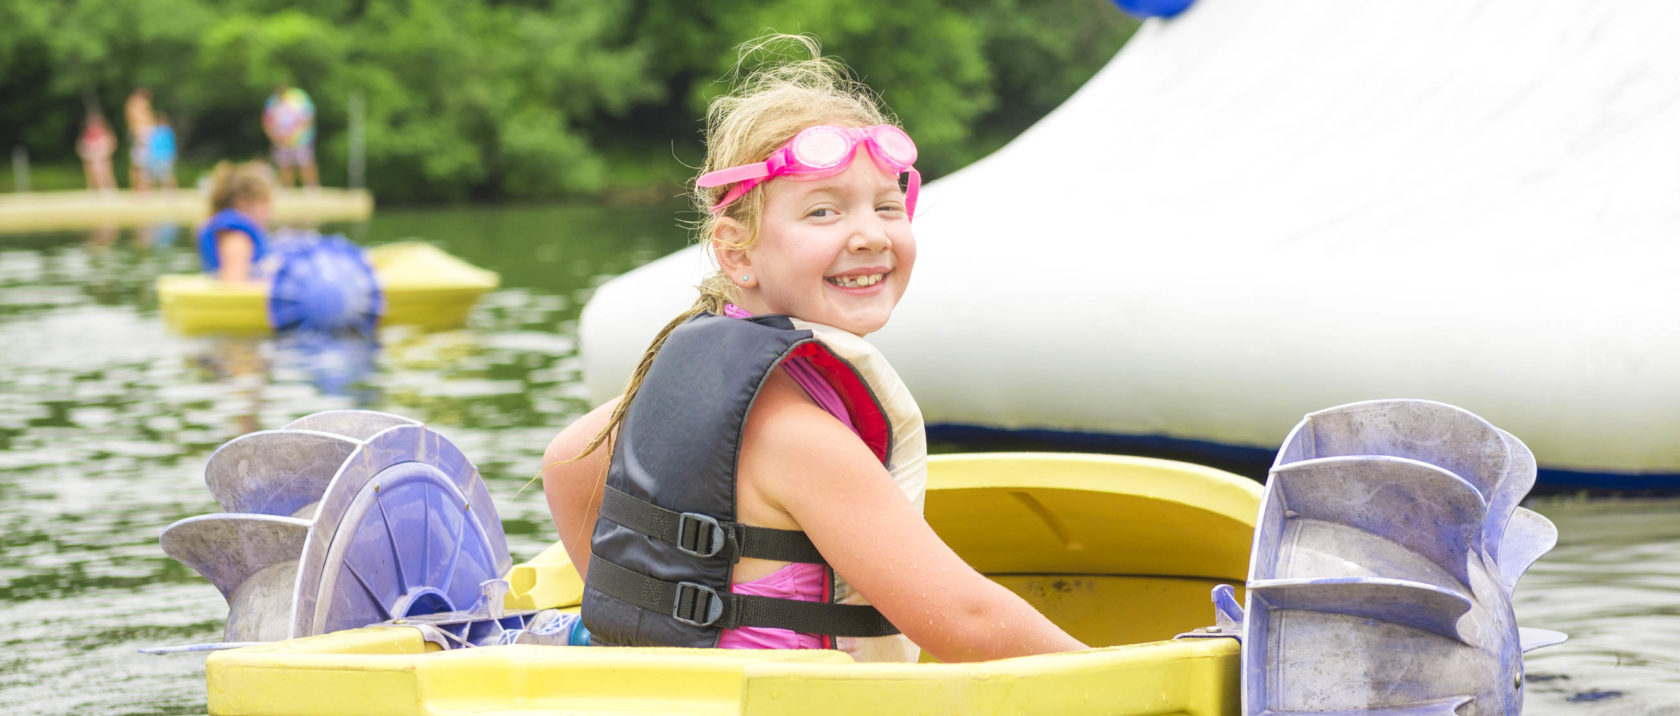 Girl camper in a peddle boat on the lake